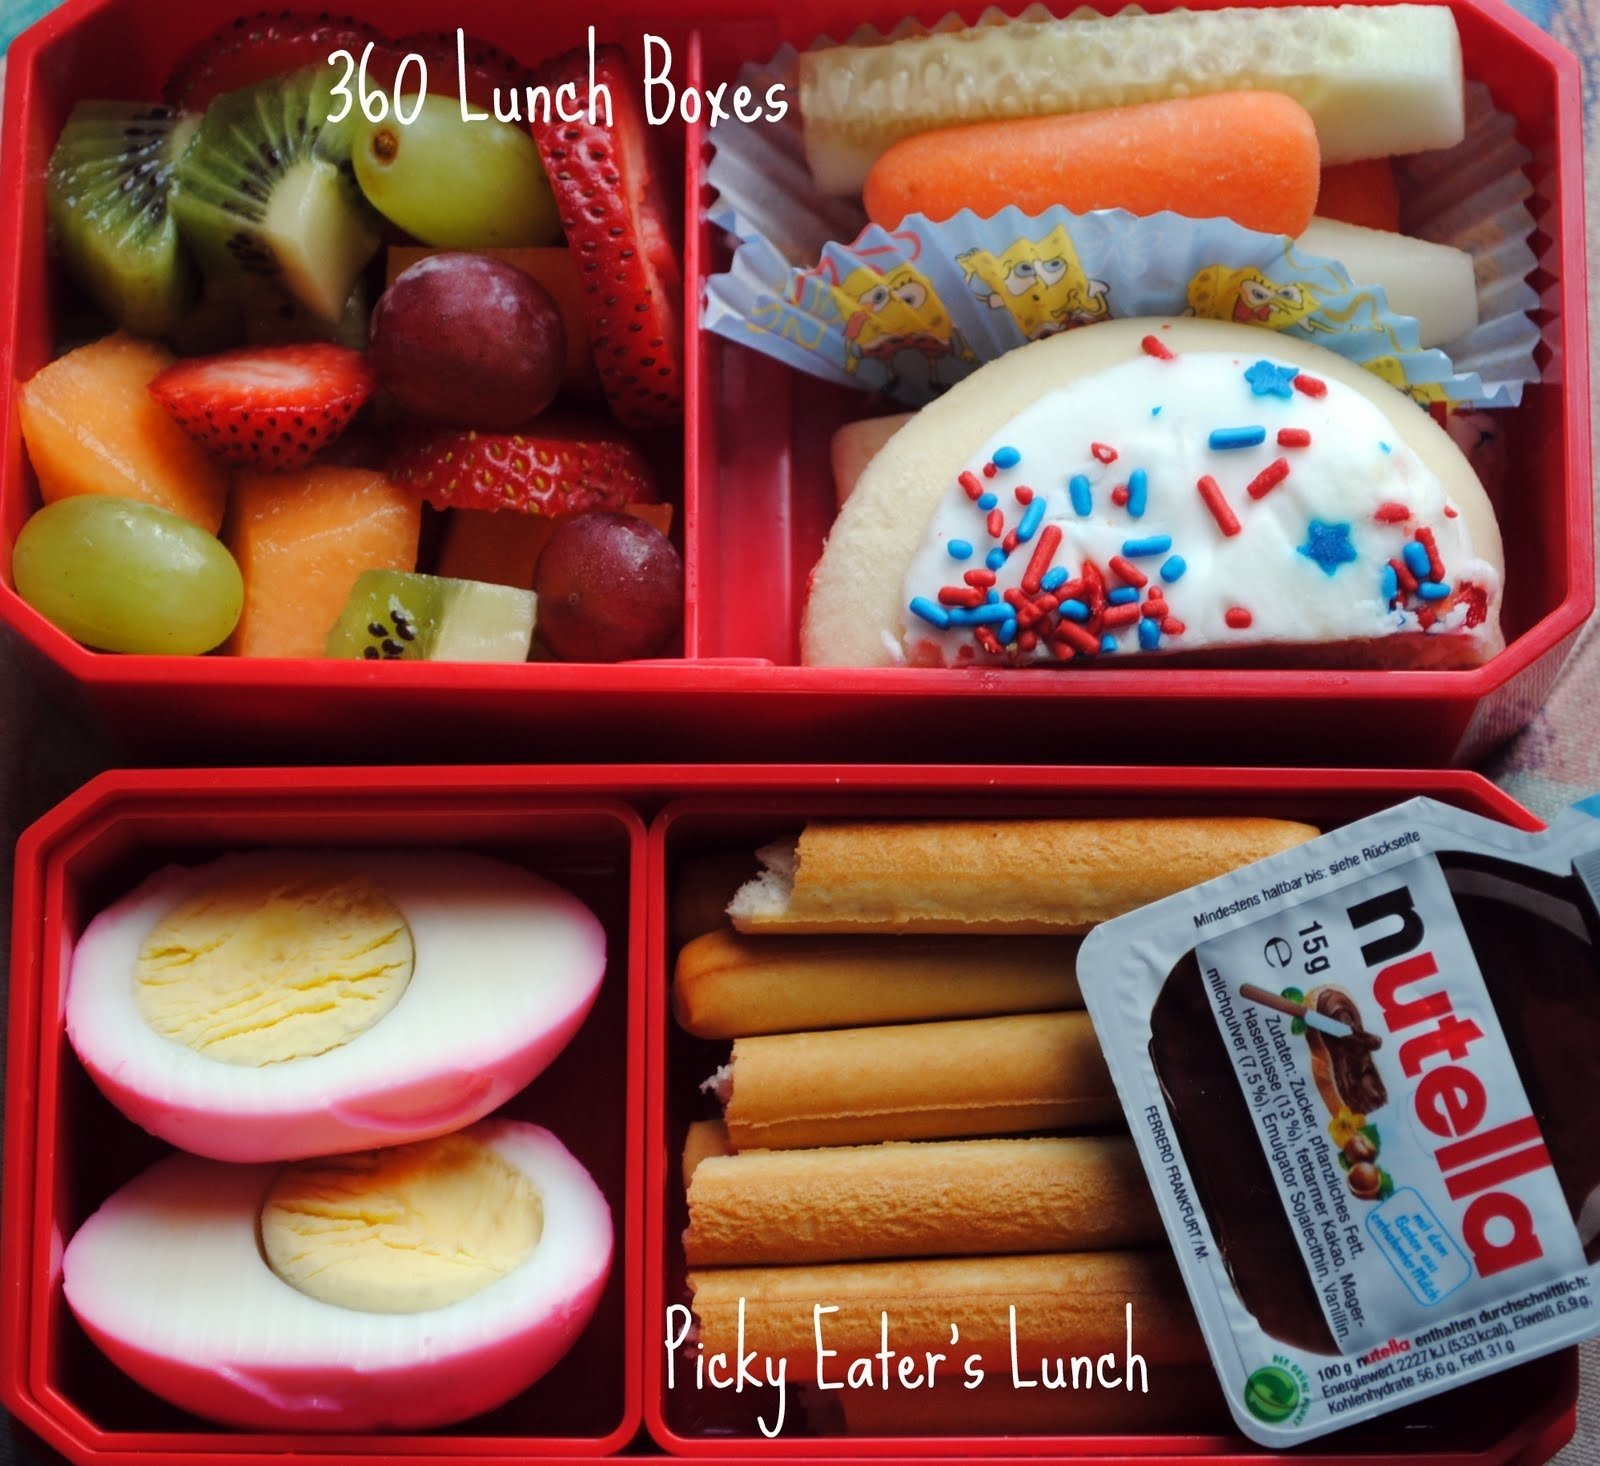 10 Cute Lunch Box Ideas For Picky Eaters 360 lunch boxes kids lunches for tuesday august 17th 2020